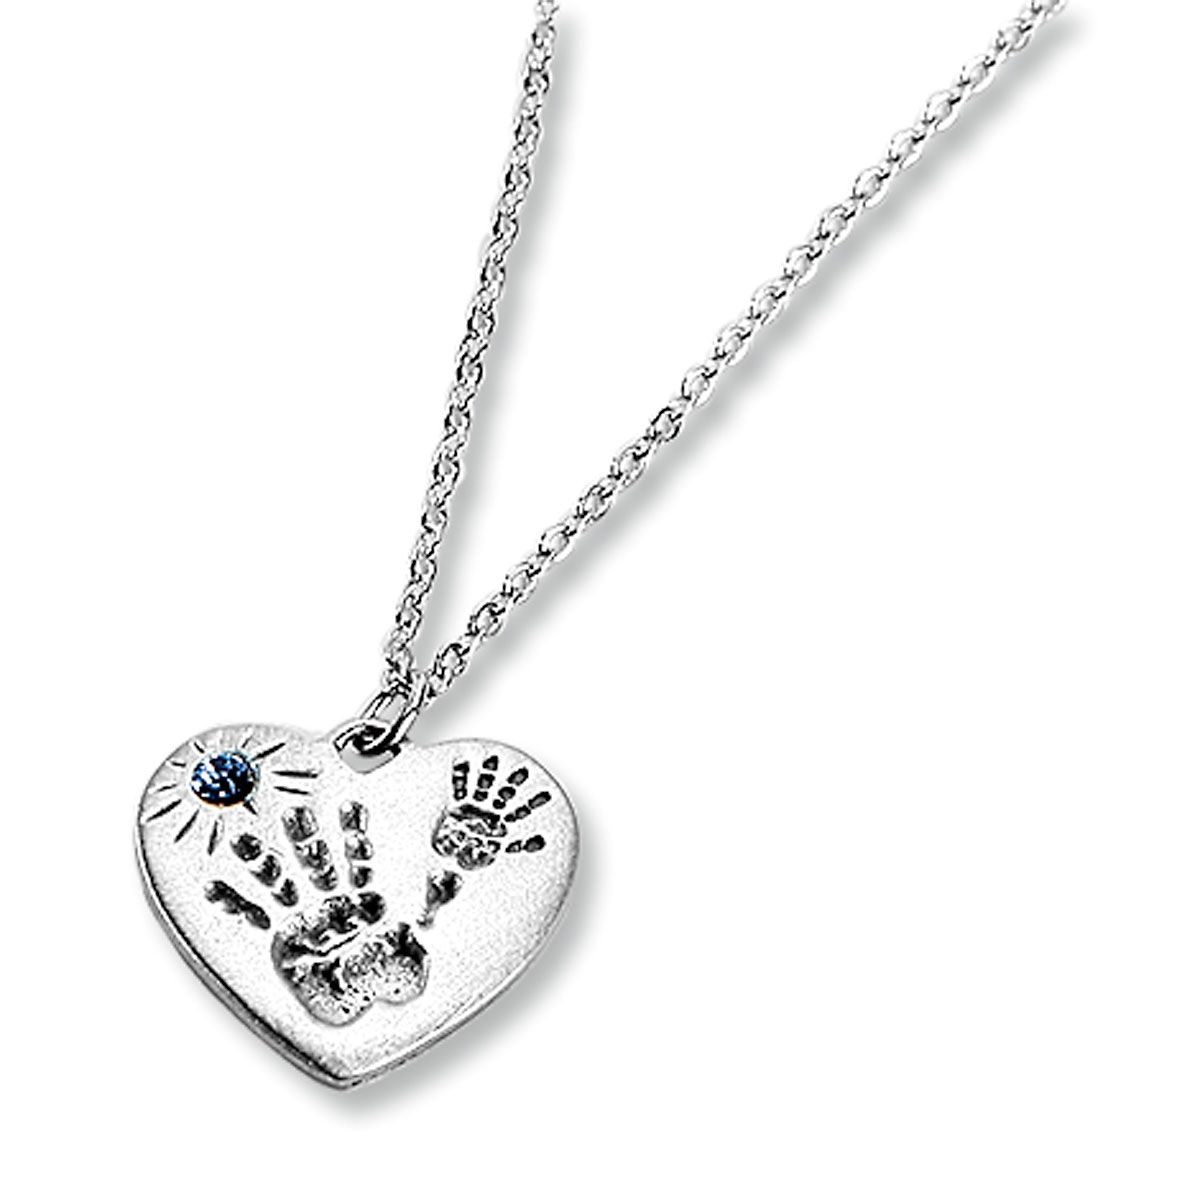 Mommy And Me Necklaces-Blue-814709B